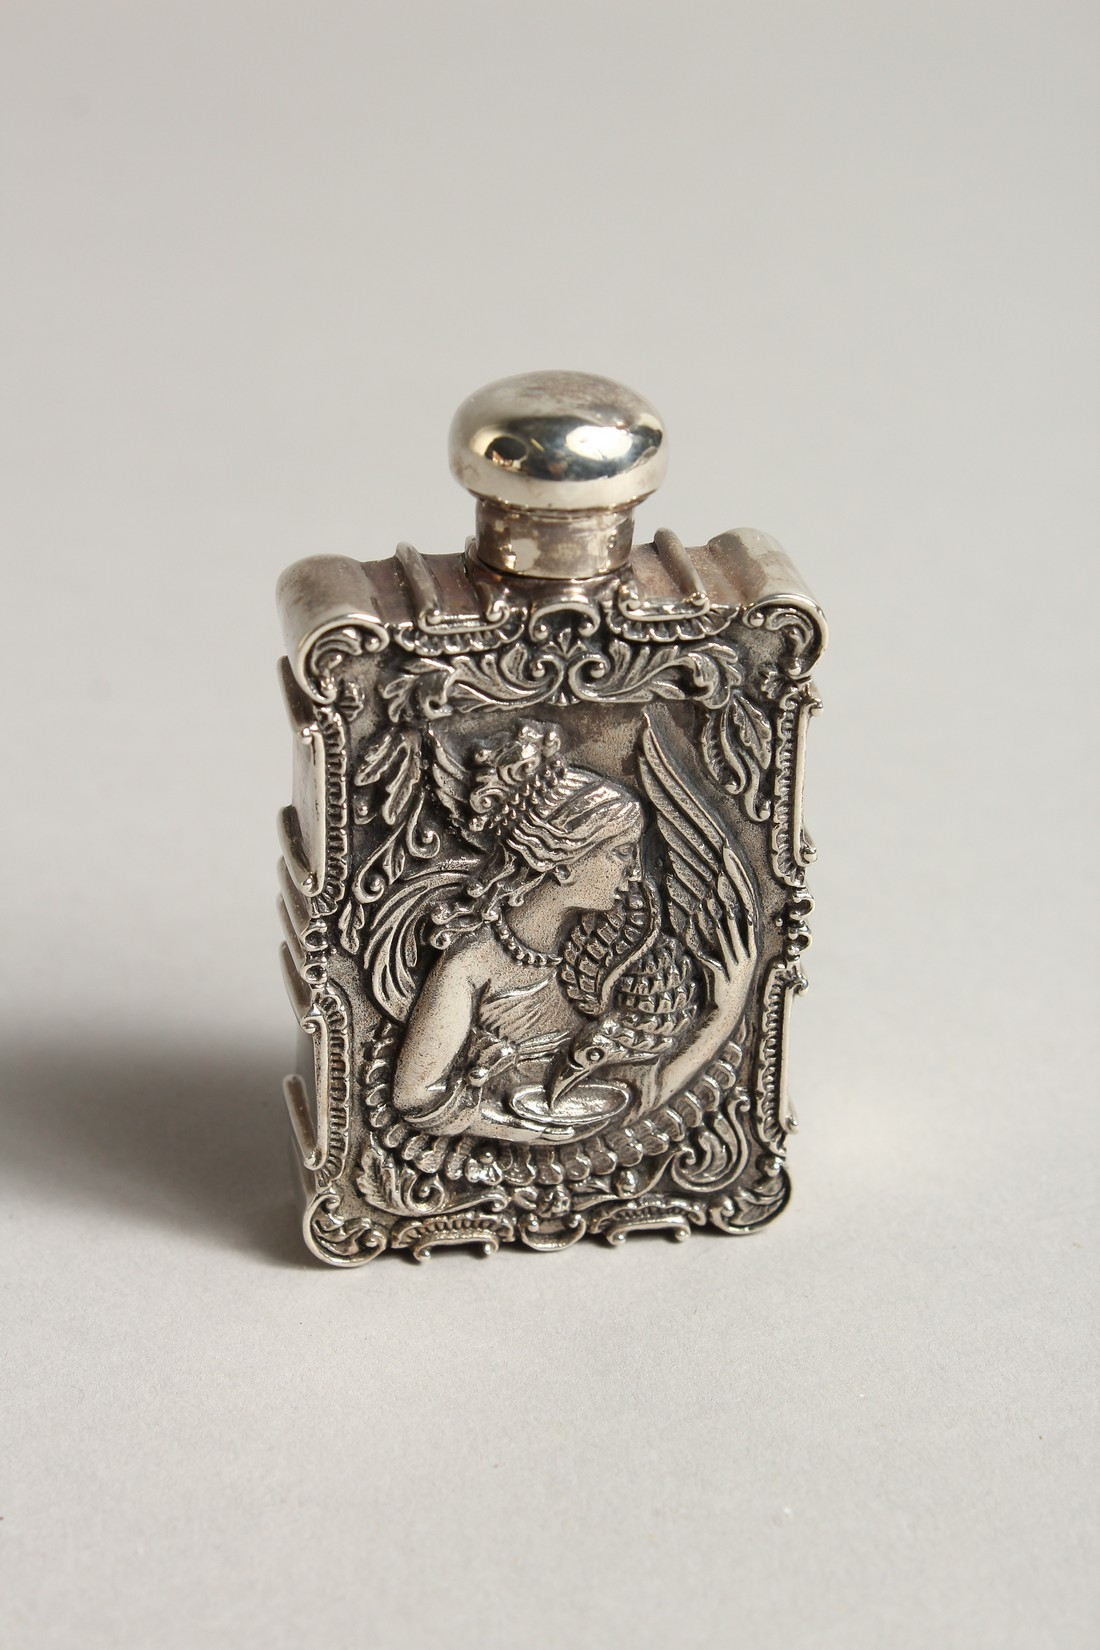 A ST. ANDREWS SOLID SILVER AND ENAMEL LEDA AND SWAN PERFUME PERFUME BOTTLE 2.5ins long - Image 2 of 2